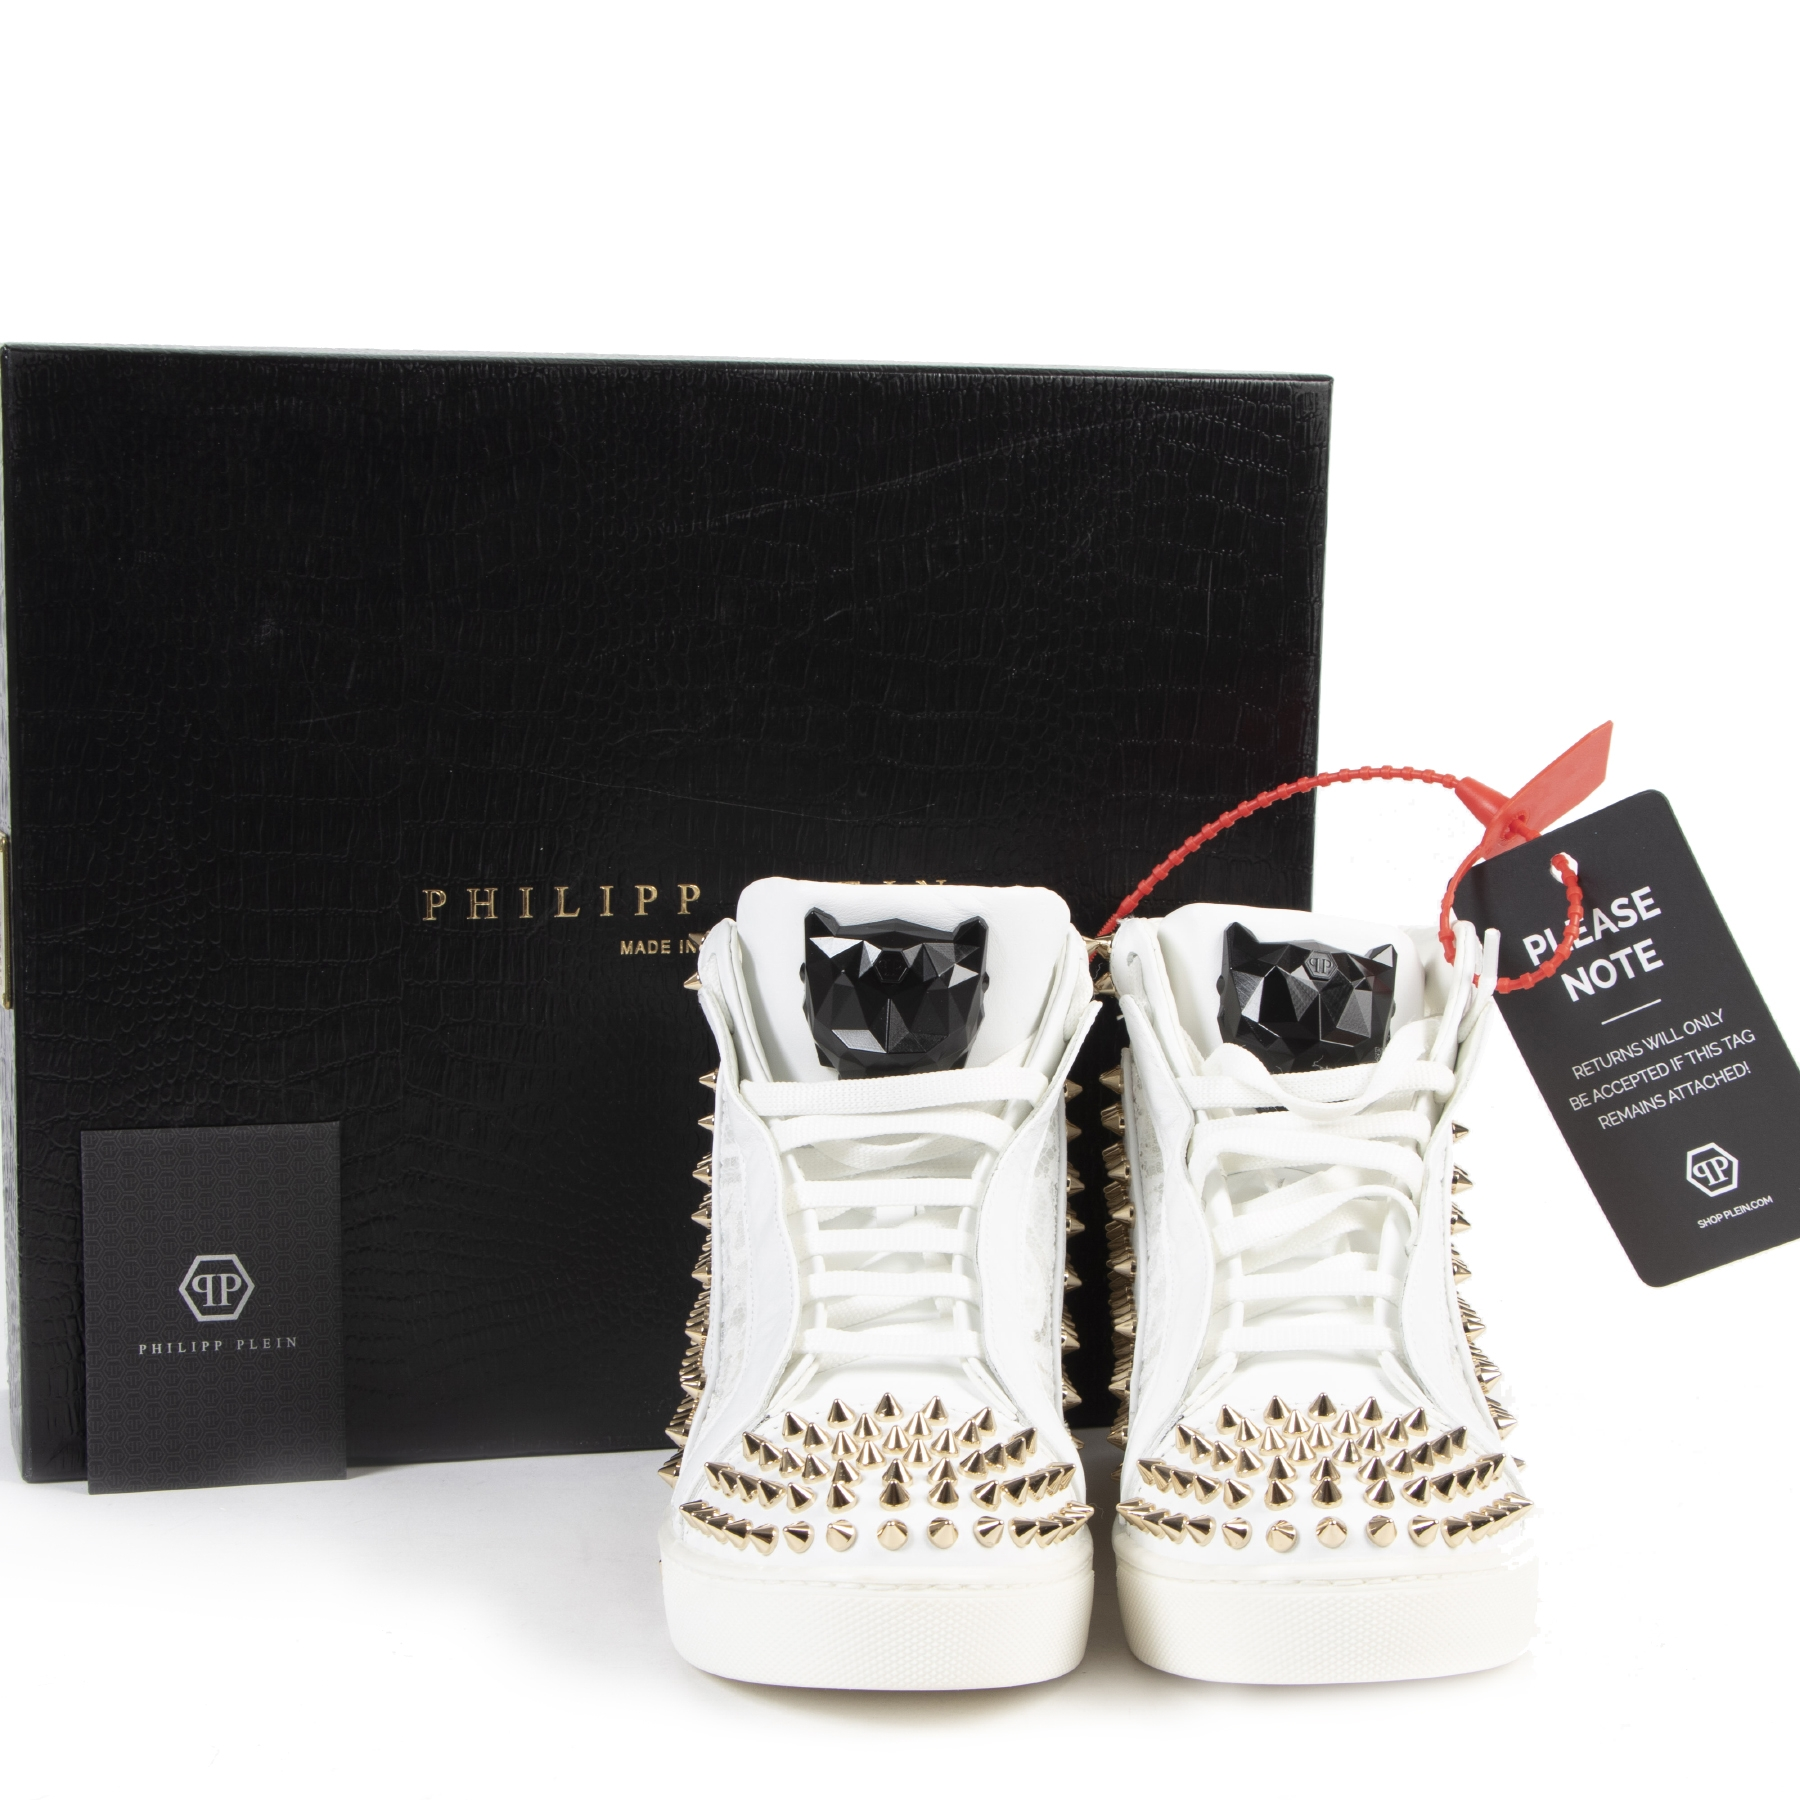 Authentic secondhand Philipp Plein White Studded Sneakers - Size 39 designer shoes accessories sneakers luxury vintage webshop fashion safe secure online shopping